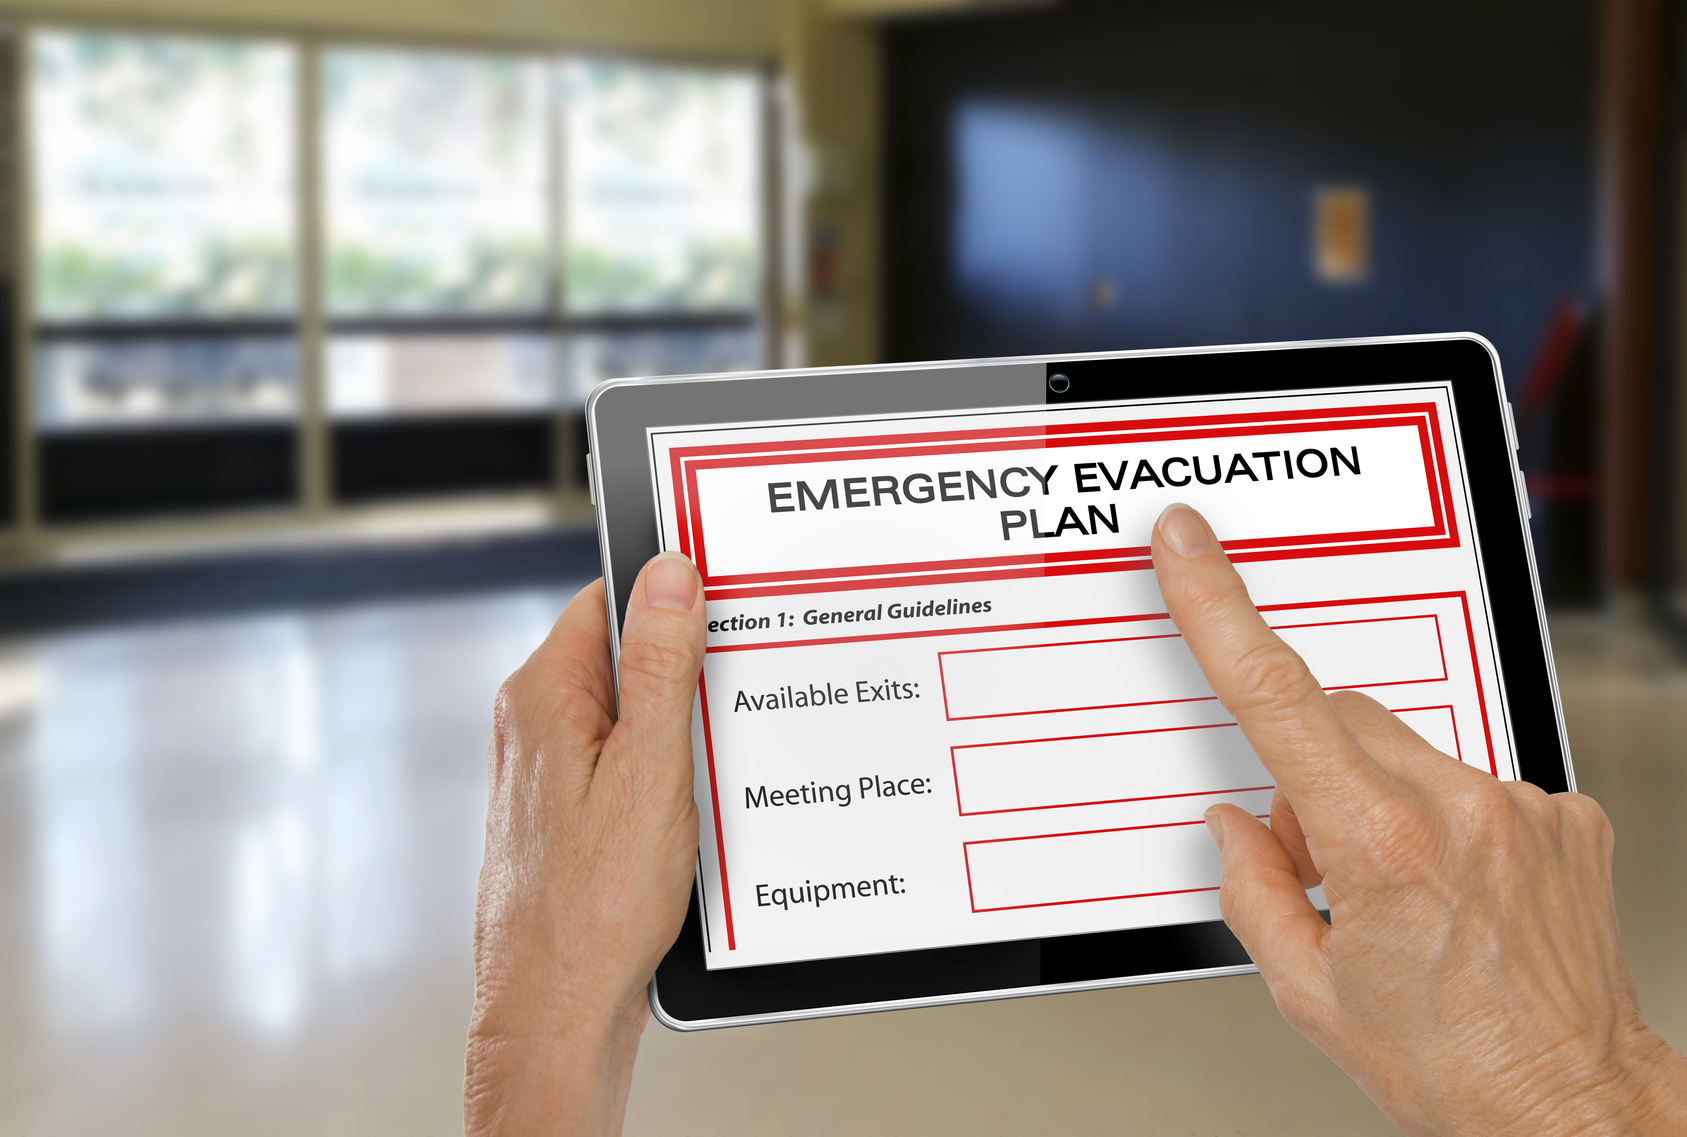 Emergency evacuation plan on tablet